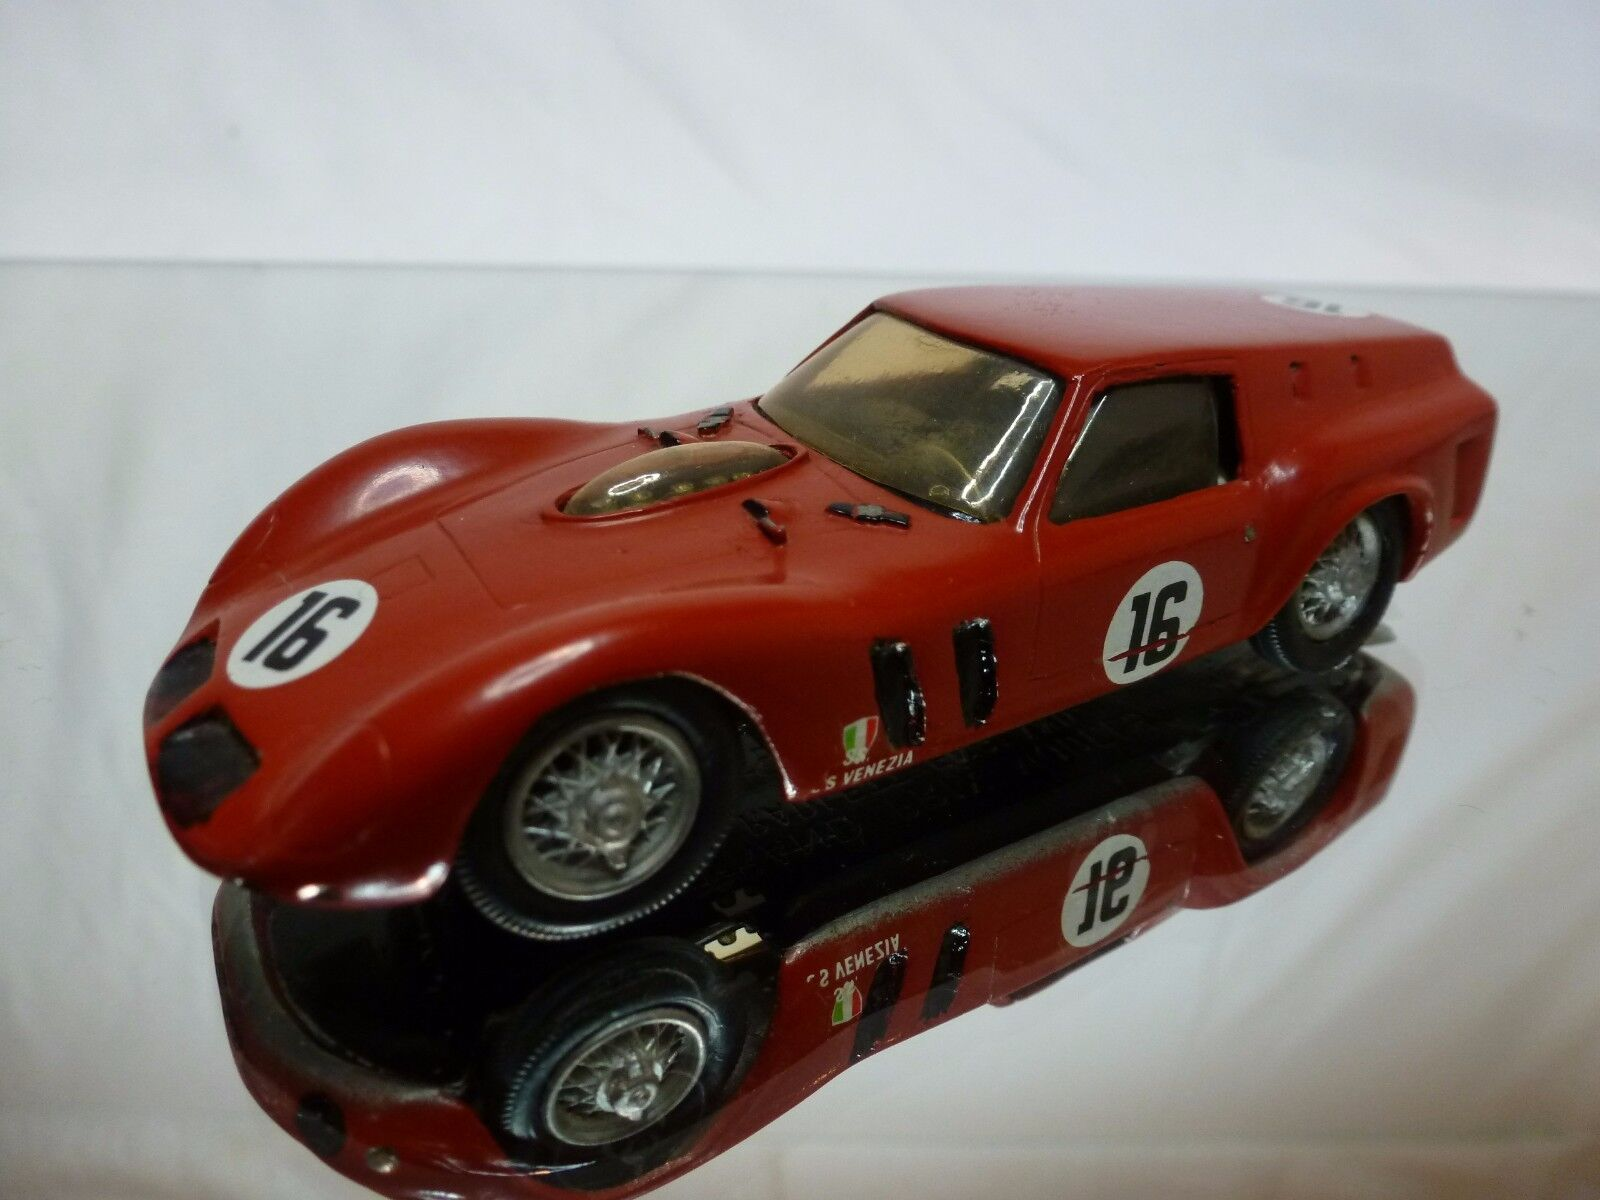 GRAND PRIX MODELS KIT built  FERRARI 250 GT BREADVAN - 1:43 RARE - SSS VENEZIA